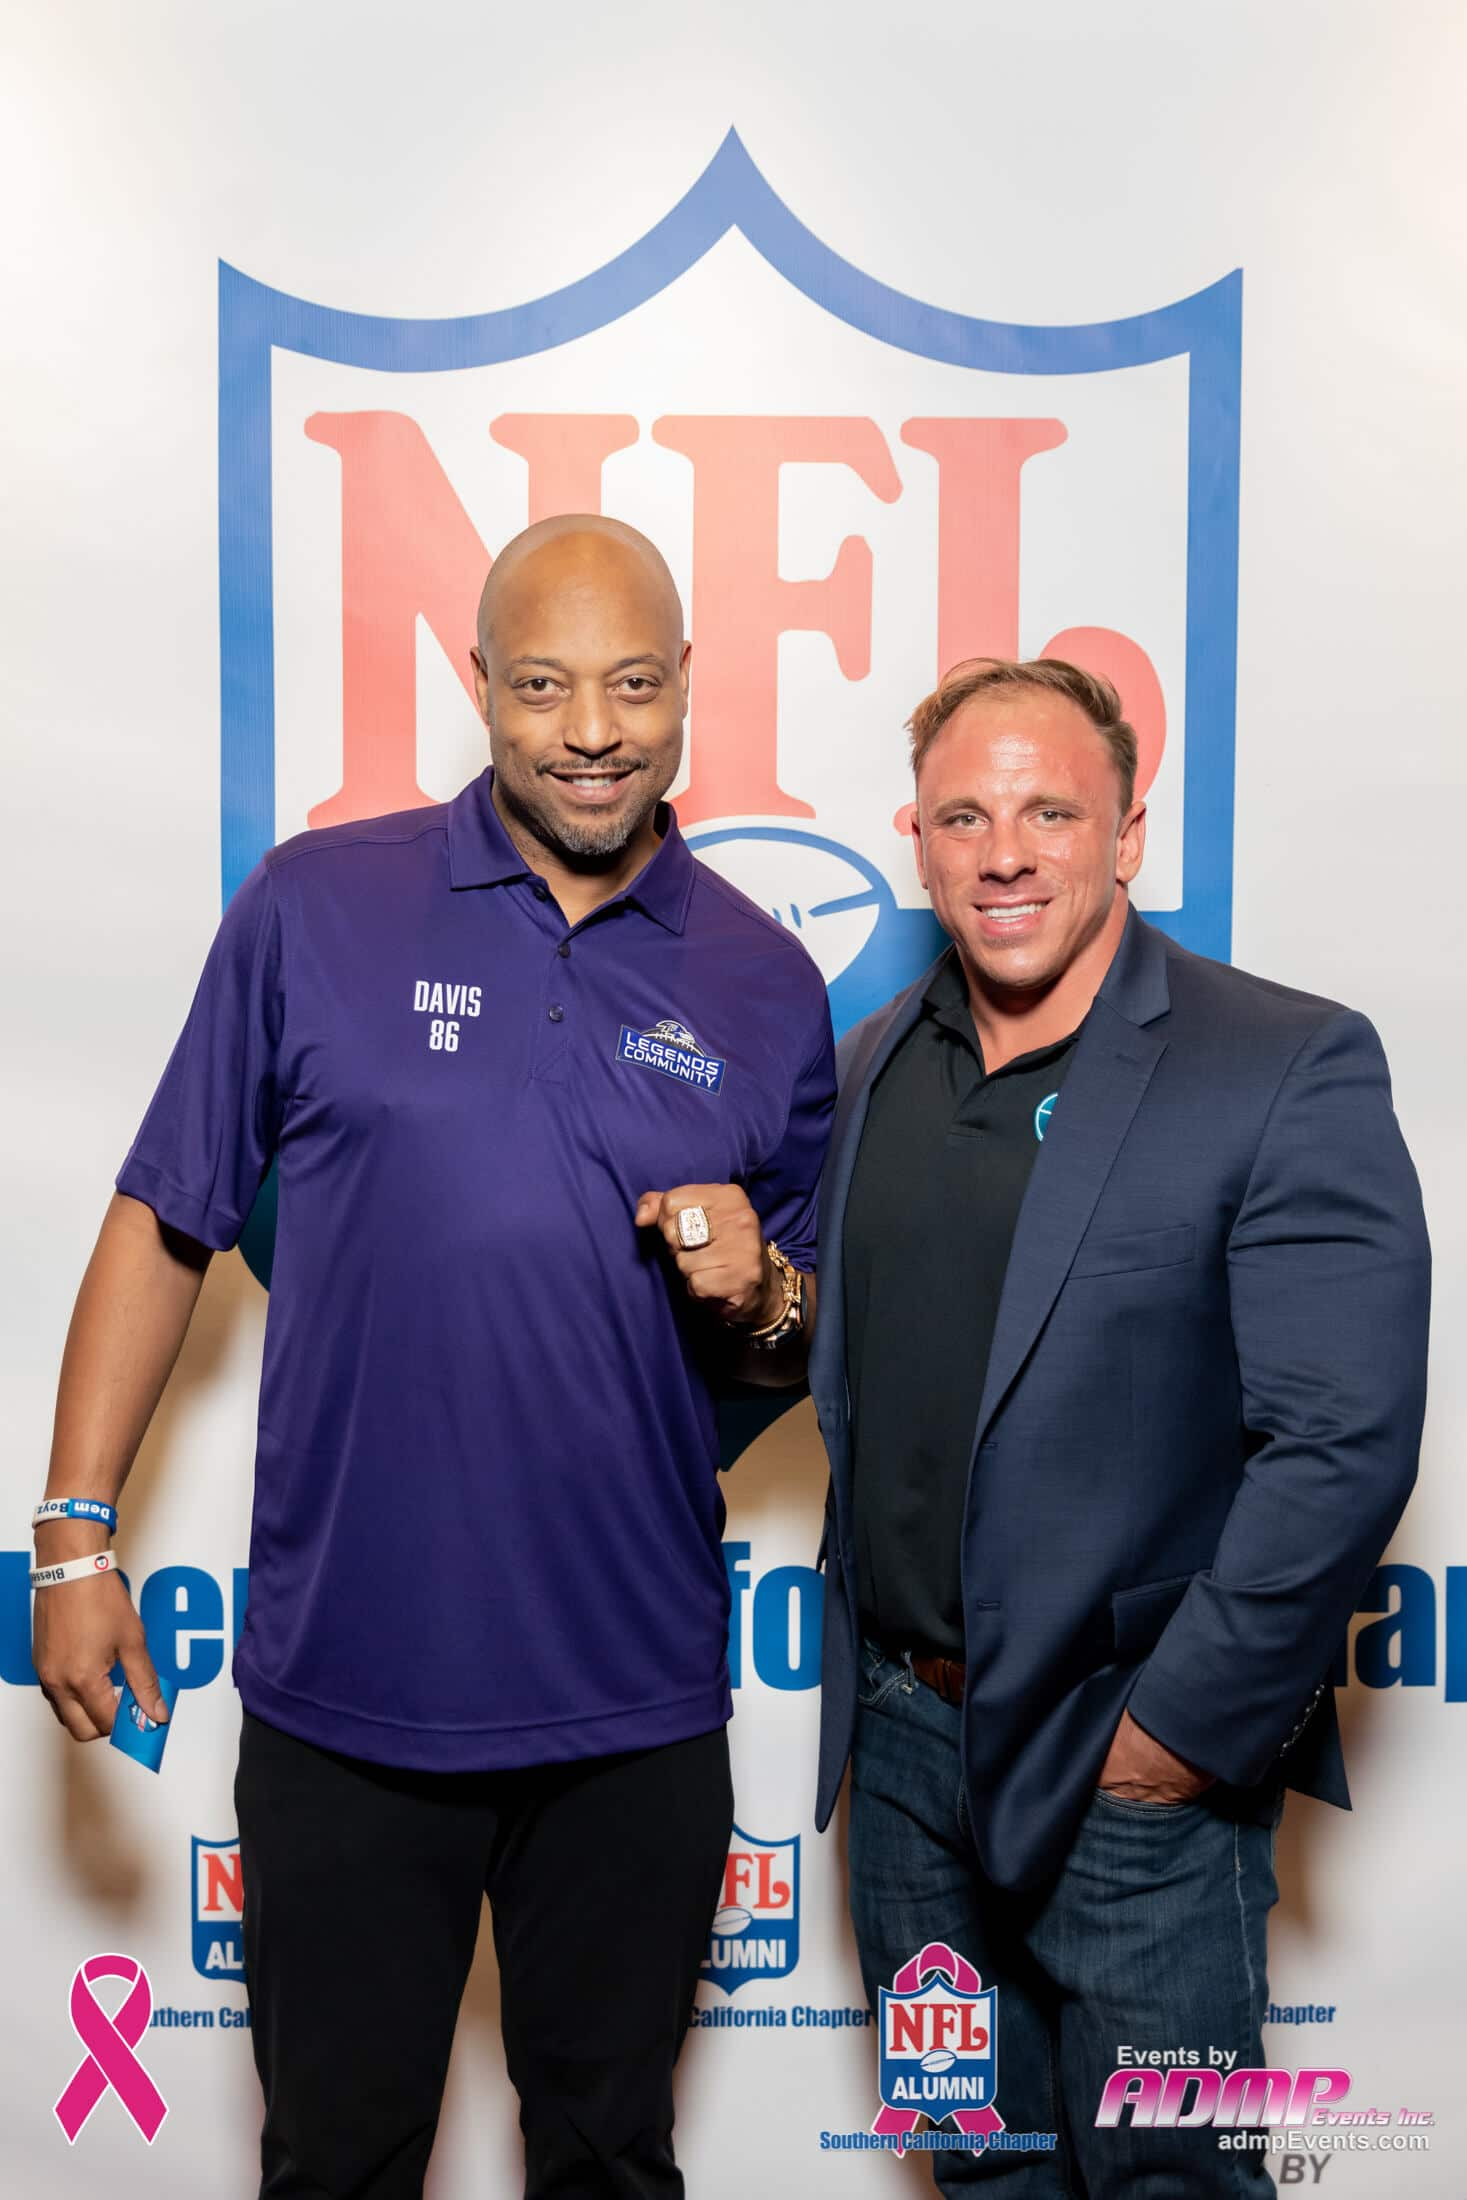 NFL Alumni SoCal Charity Event Series Breast Cancer Event 10-14-19-247